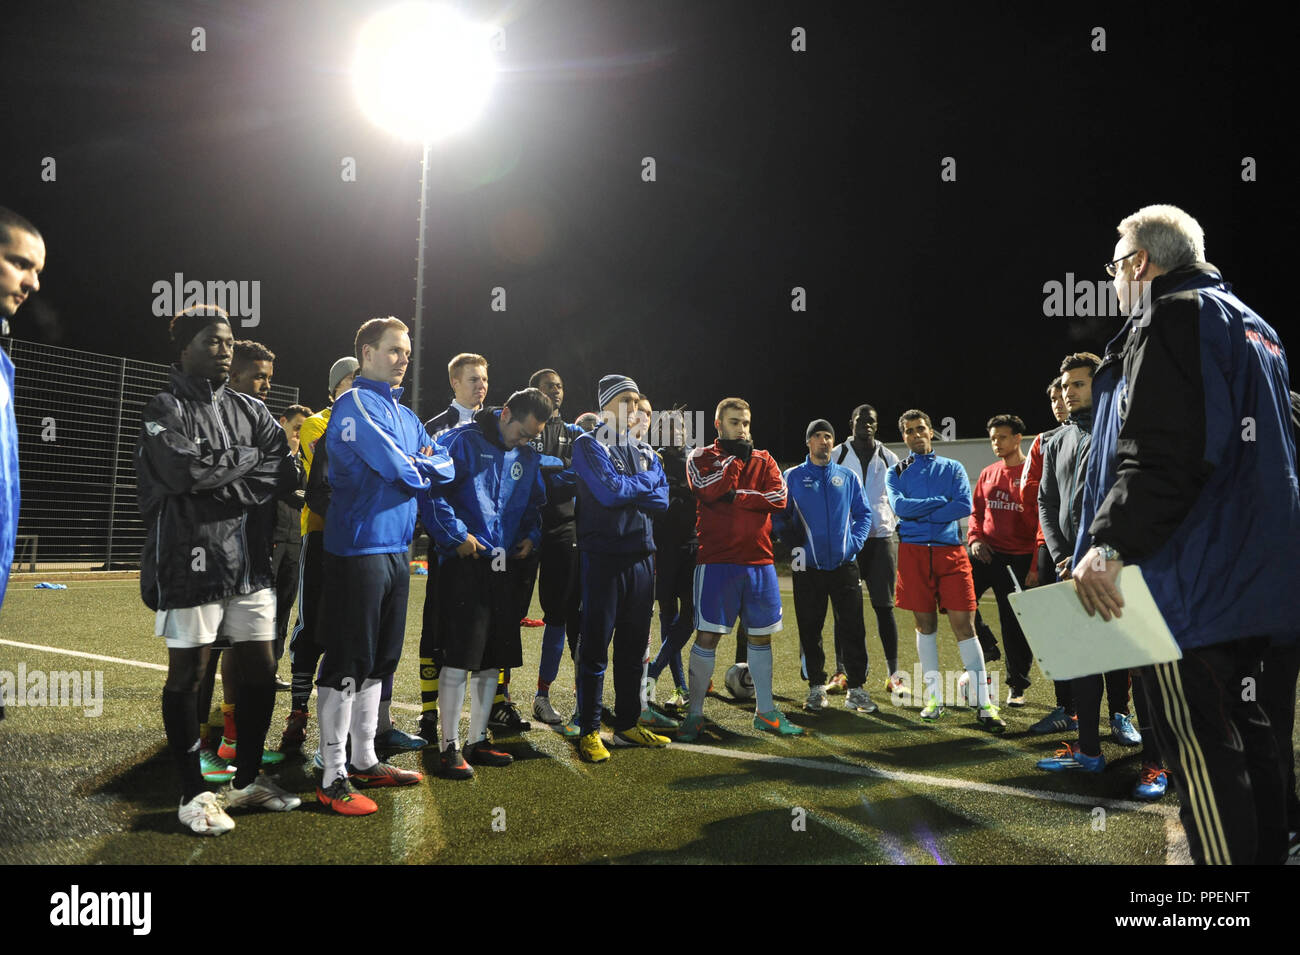 The Munich football club FC Wacker cares about the successful integration of migrants and asylum seekers in the image coach Bernd Klemm speaking to his players. - Stock Image